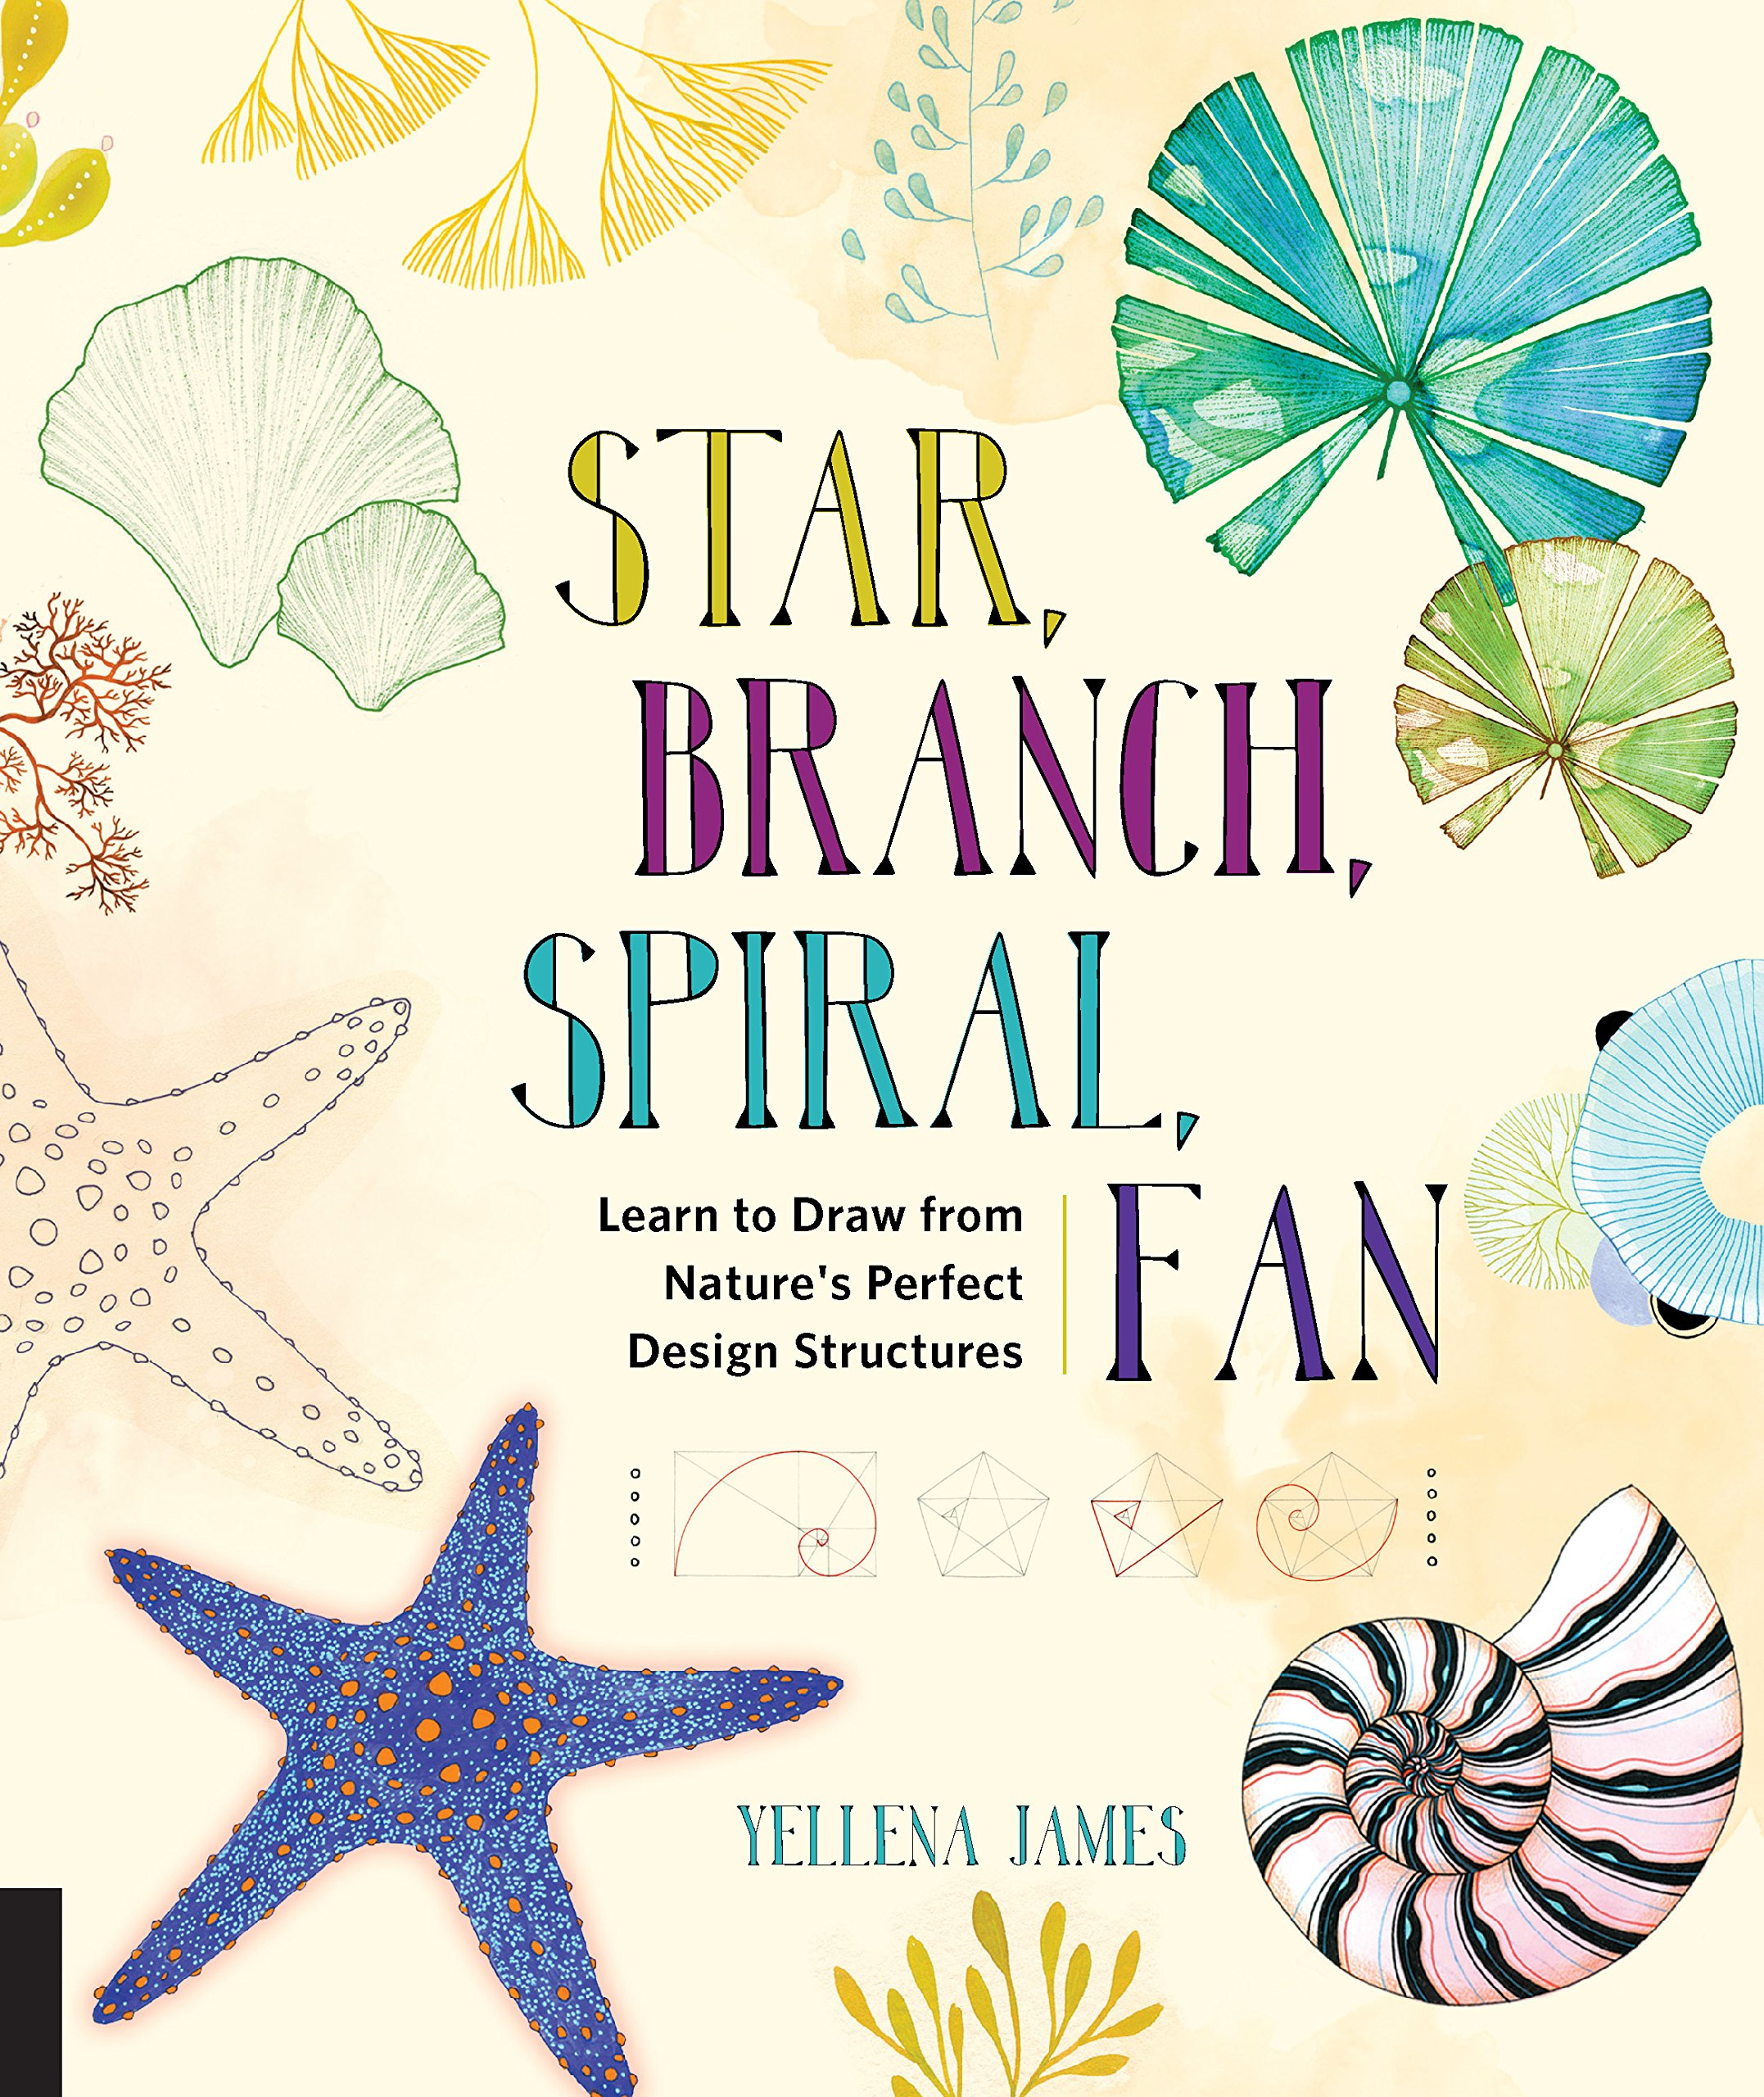 Star Branch Spiral Fan Learn To Draw From Nature S Perfect